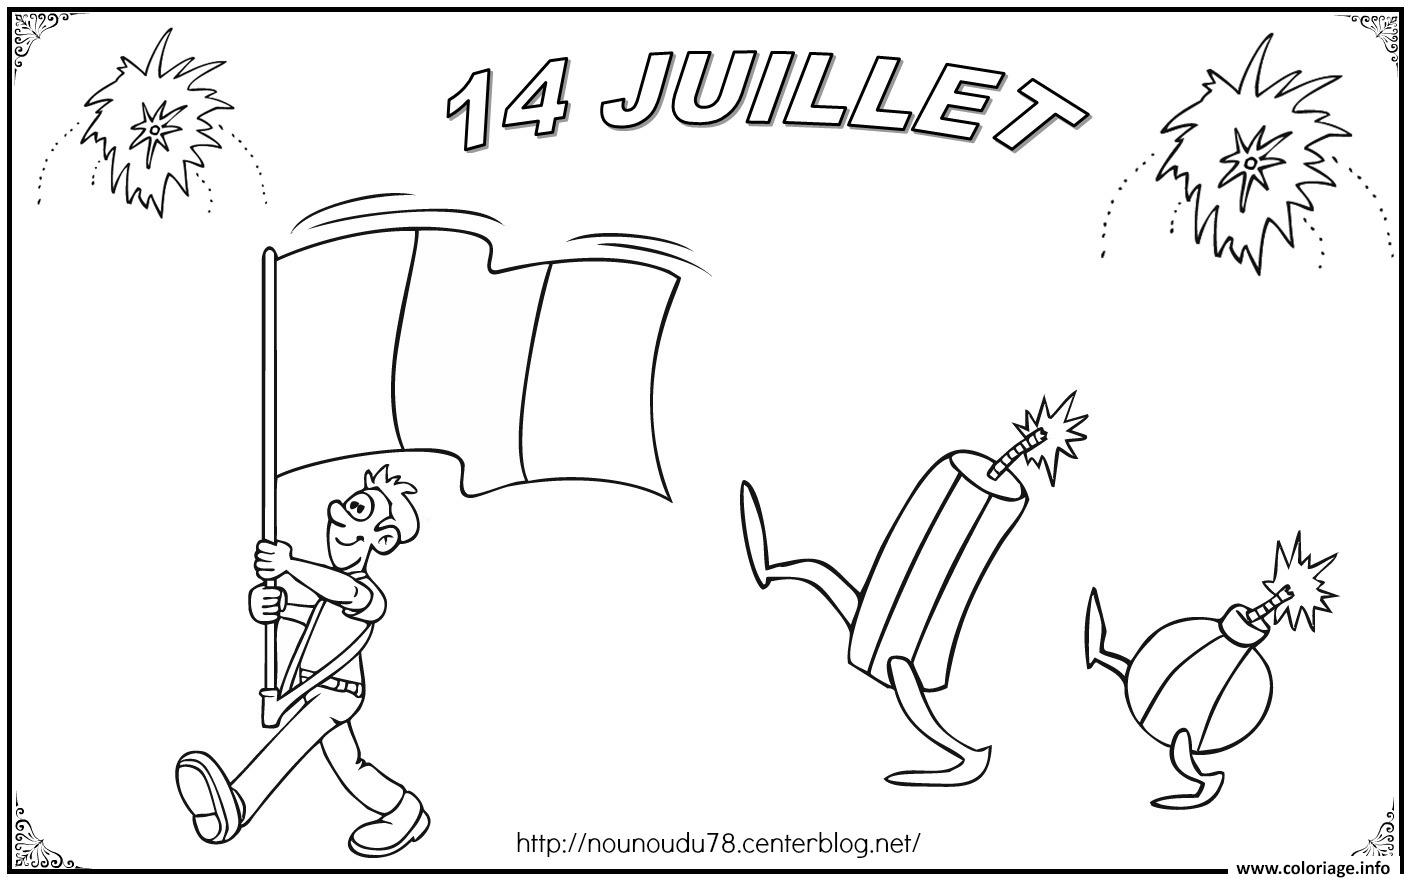 Coloriage 14 Juillet Fete Nationale France Dessin à Imprimer